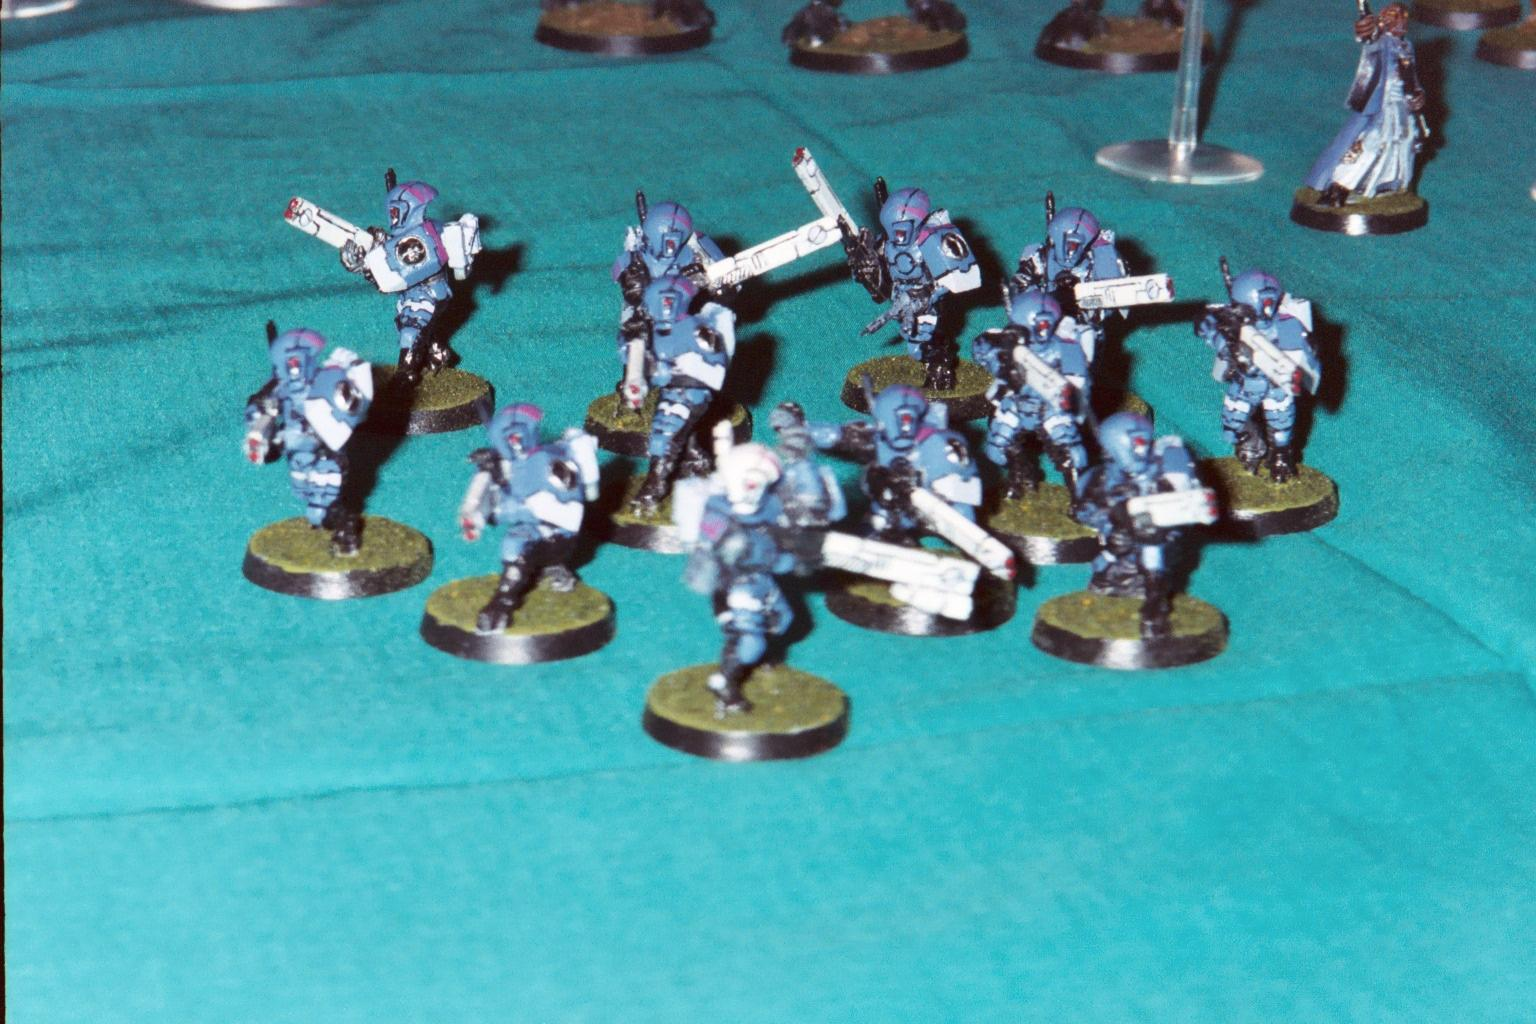 Blue, Carapace, Fire Warriors, Infantry, Pulse Carbine, Tau, Unit, Warhammer 40,000